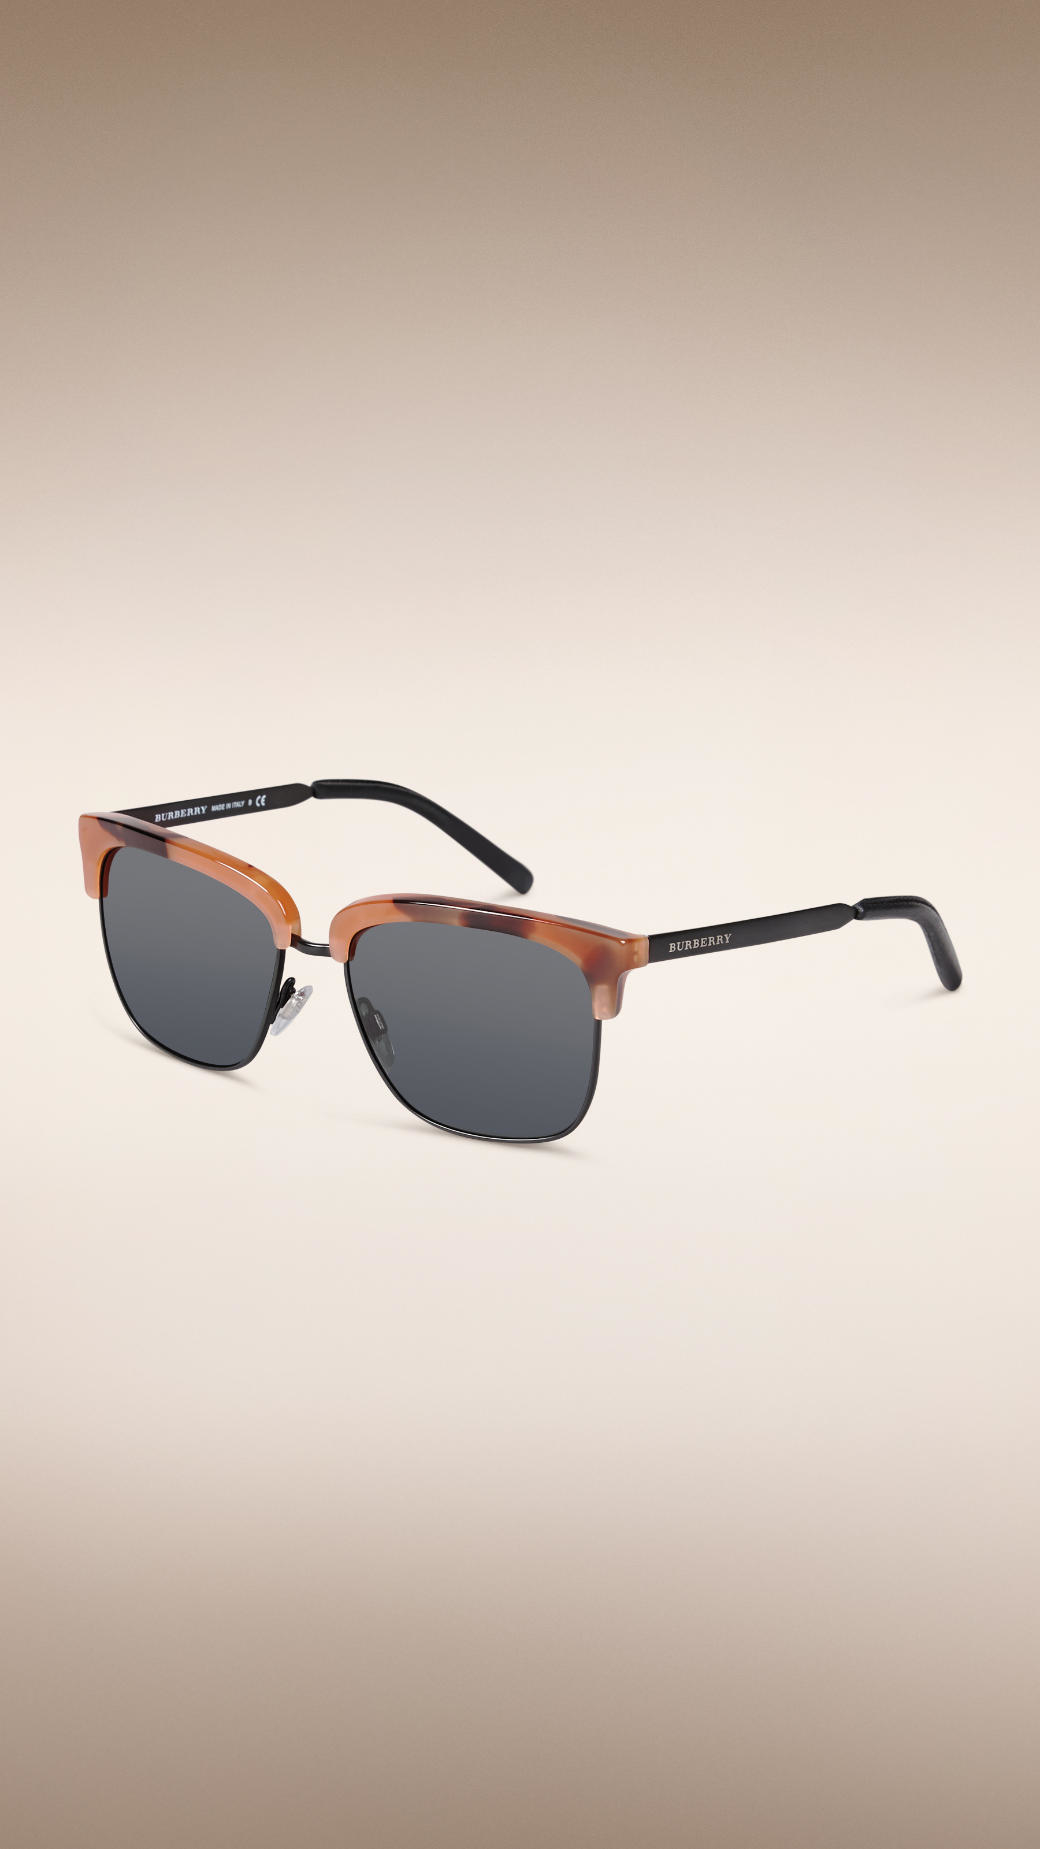 Burberry Trench Collection Square Frame Sunglasses in Tortoise Amber (Black) for Men